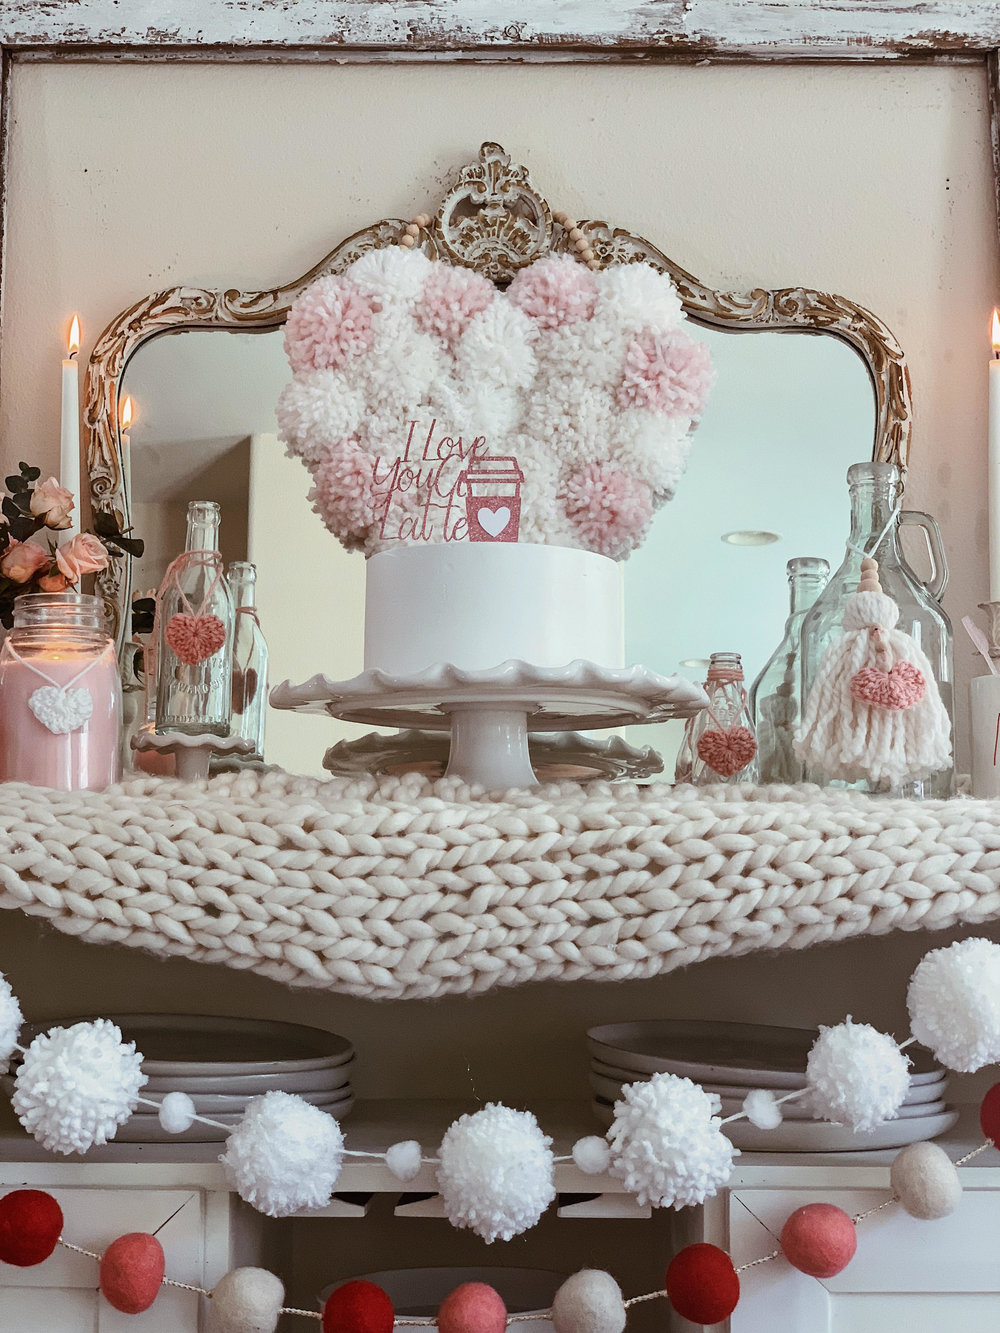 Valentine Decor-Valentine farmhouse decor-www.sugarpartiesla.com.jpg